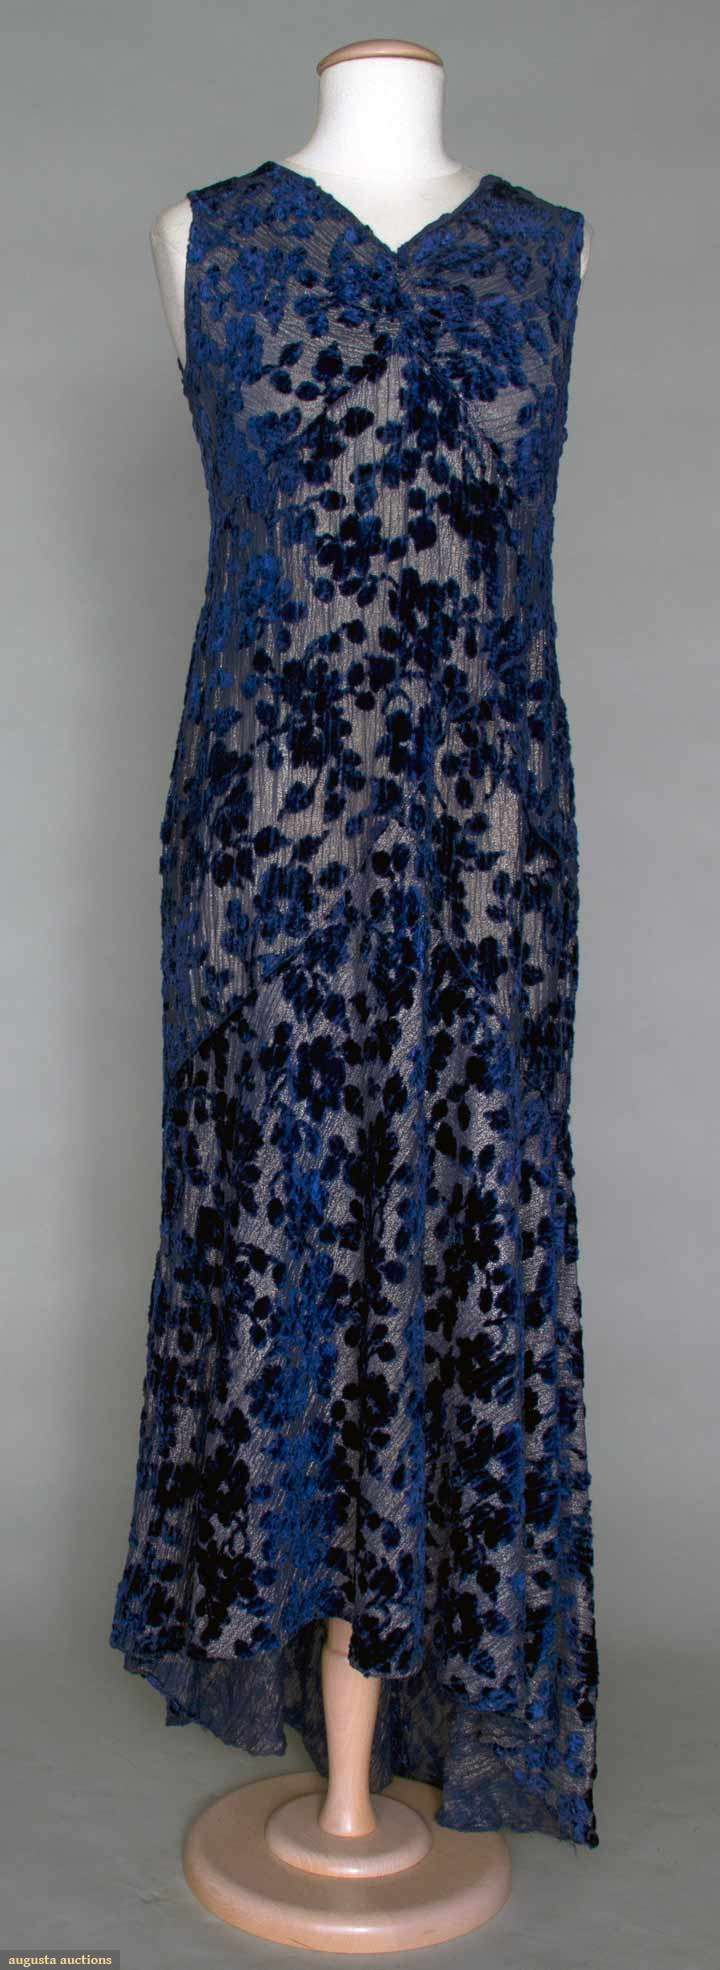 1930s LAME & CUT VELVET EVENING GOWN, Deep blue velvet florals cut to gold lame, trained back, interesting piecing at hips